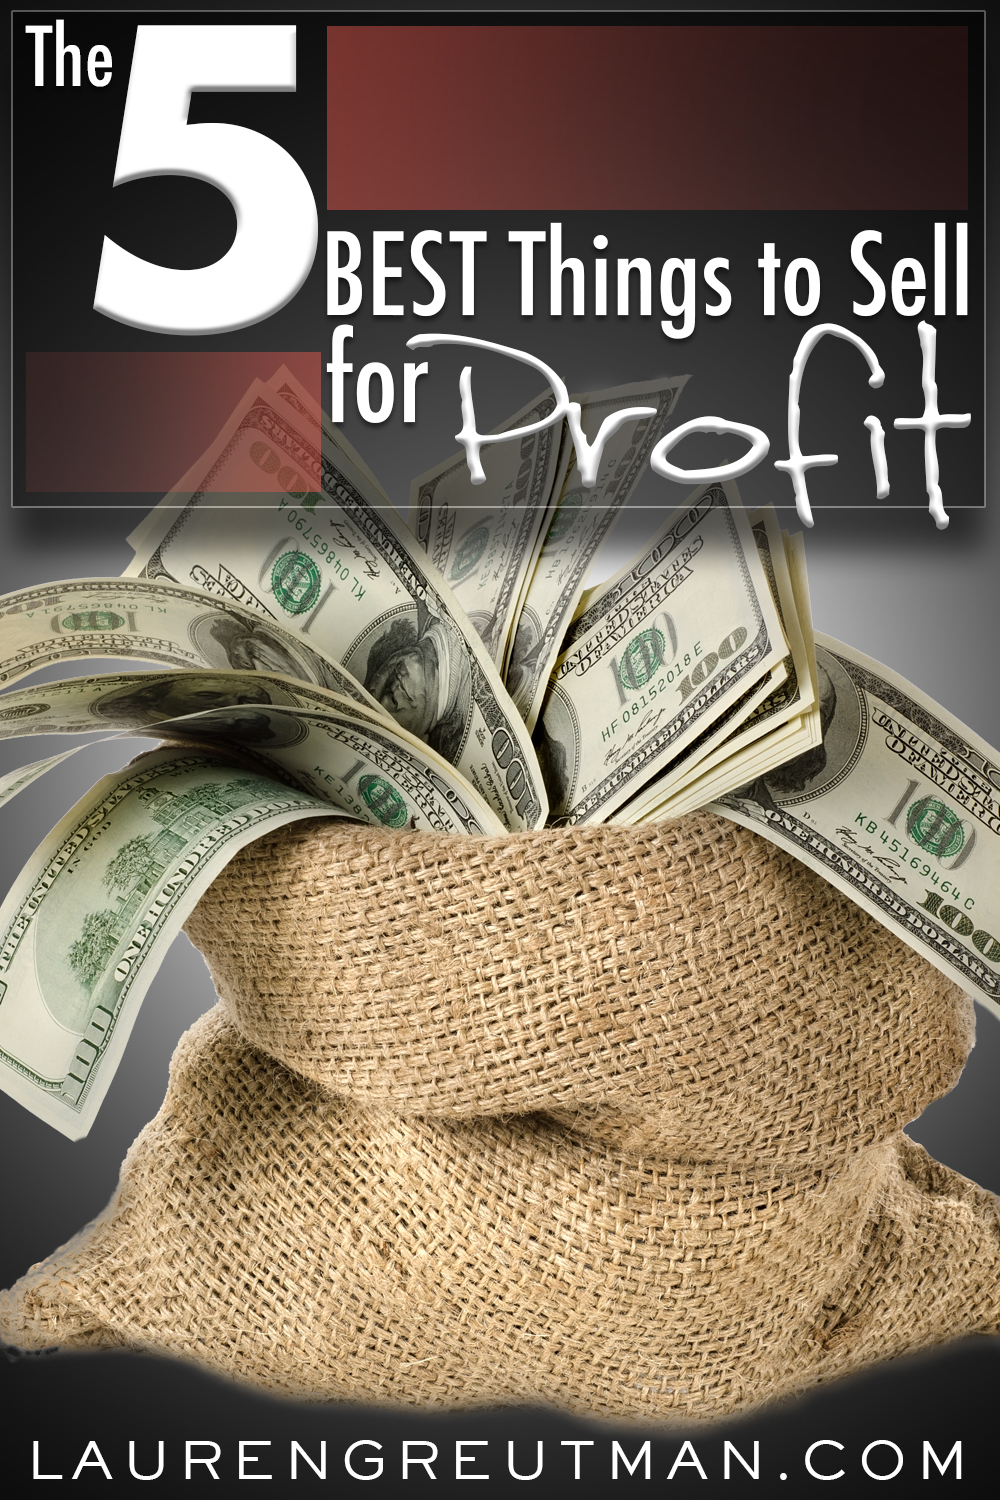 Are you looking to make some extra cash without getting another job? Here are 5 of the best things to sell to make money.